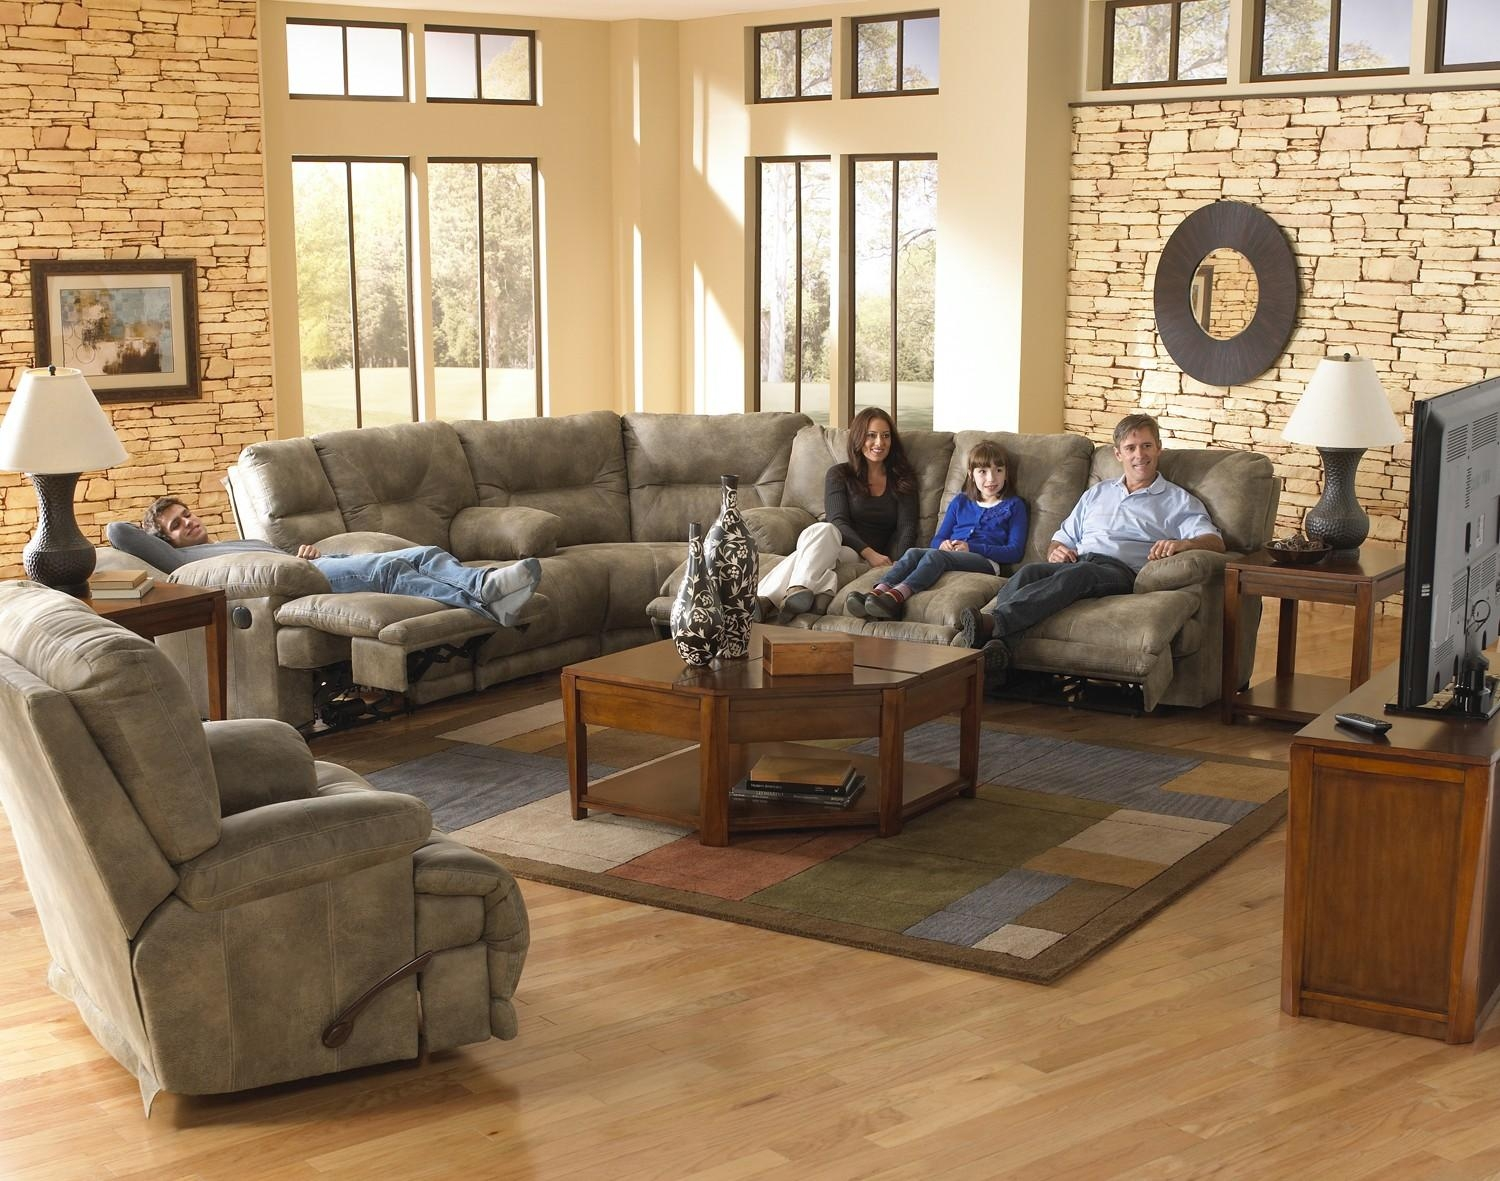 Catnapper Voyager Lay Flat 3 Pc Sectional W/ Triple Recline Sofa With Regard To Catnapper Reclining Sofas (View 2 of 20)